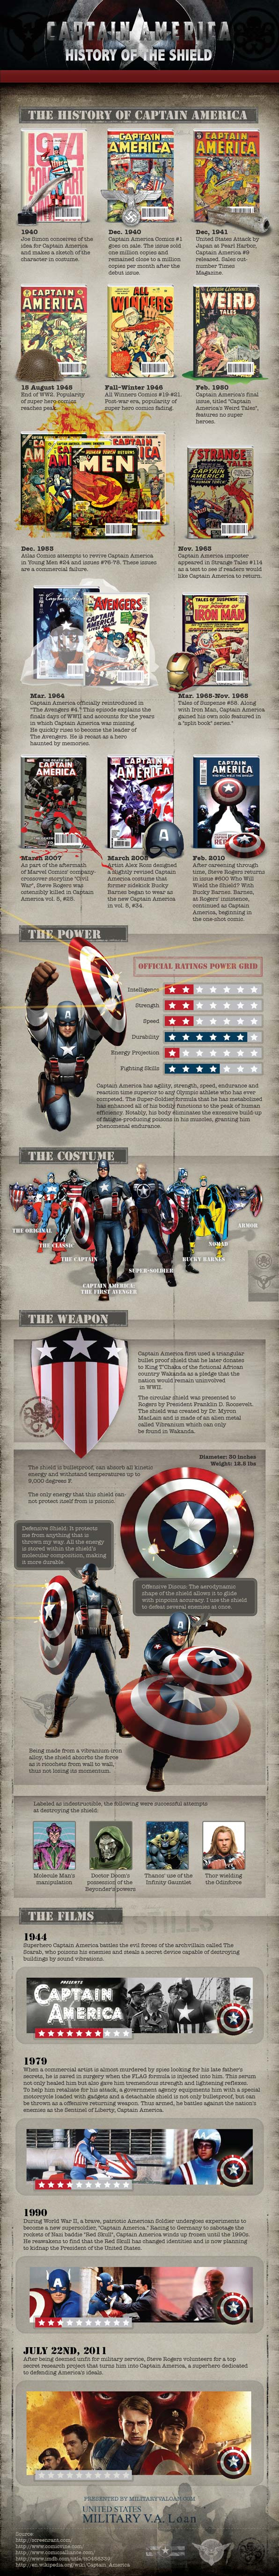 captain-america-infographic-small